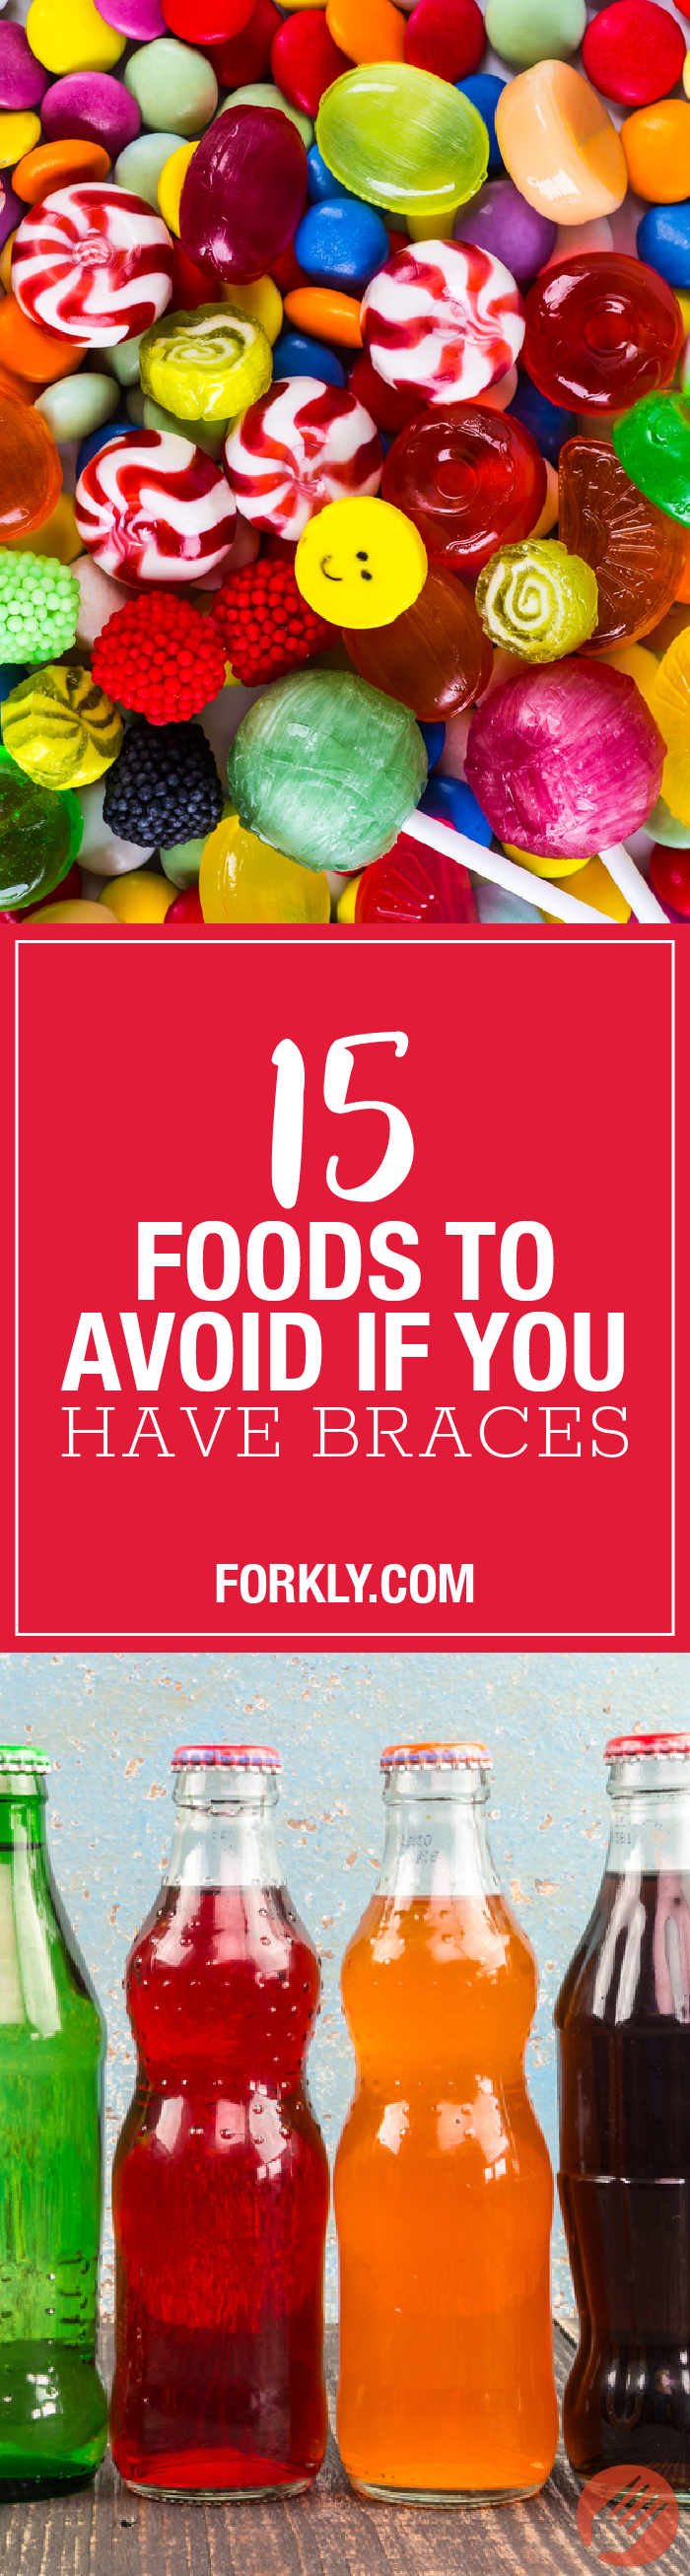 Foods To Avoid If You Have Braces (With images) Foods to